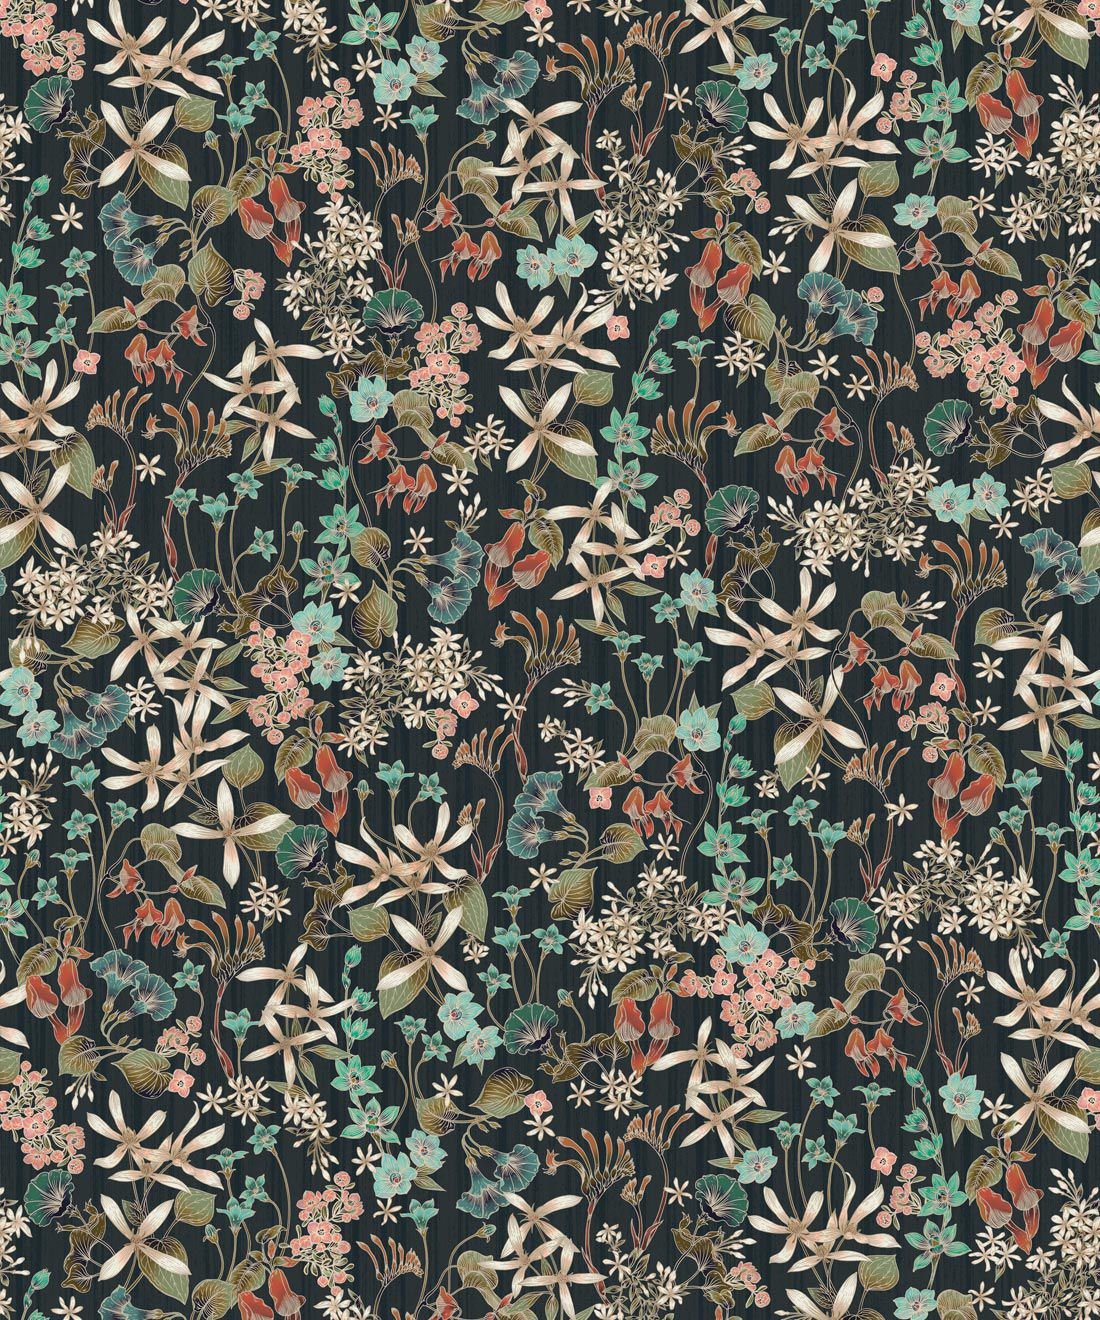 County Flowers Wallpaper • Eloise Short • Vintage Floral Wallpaper •Granny Chic Wallpaper • Grandmillennial Style Wallpaper •Charcoal •Swatch